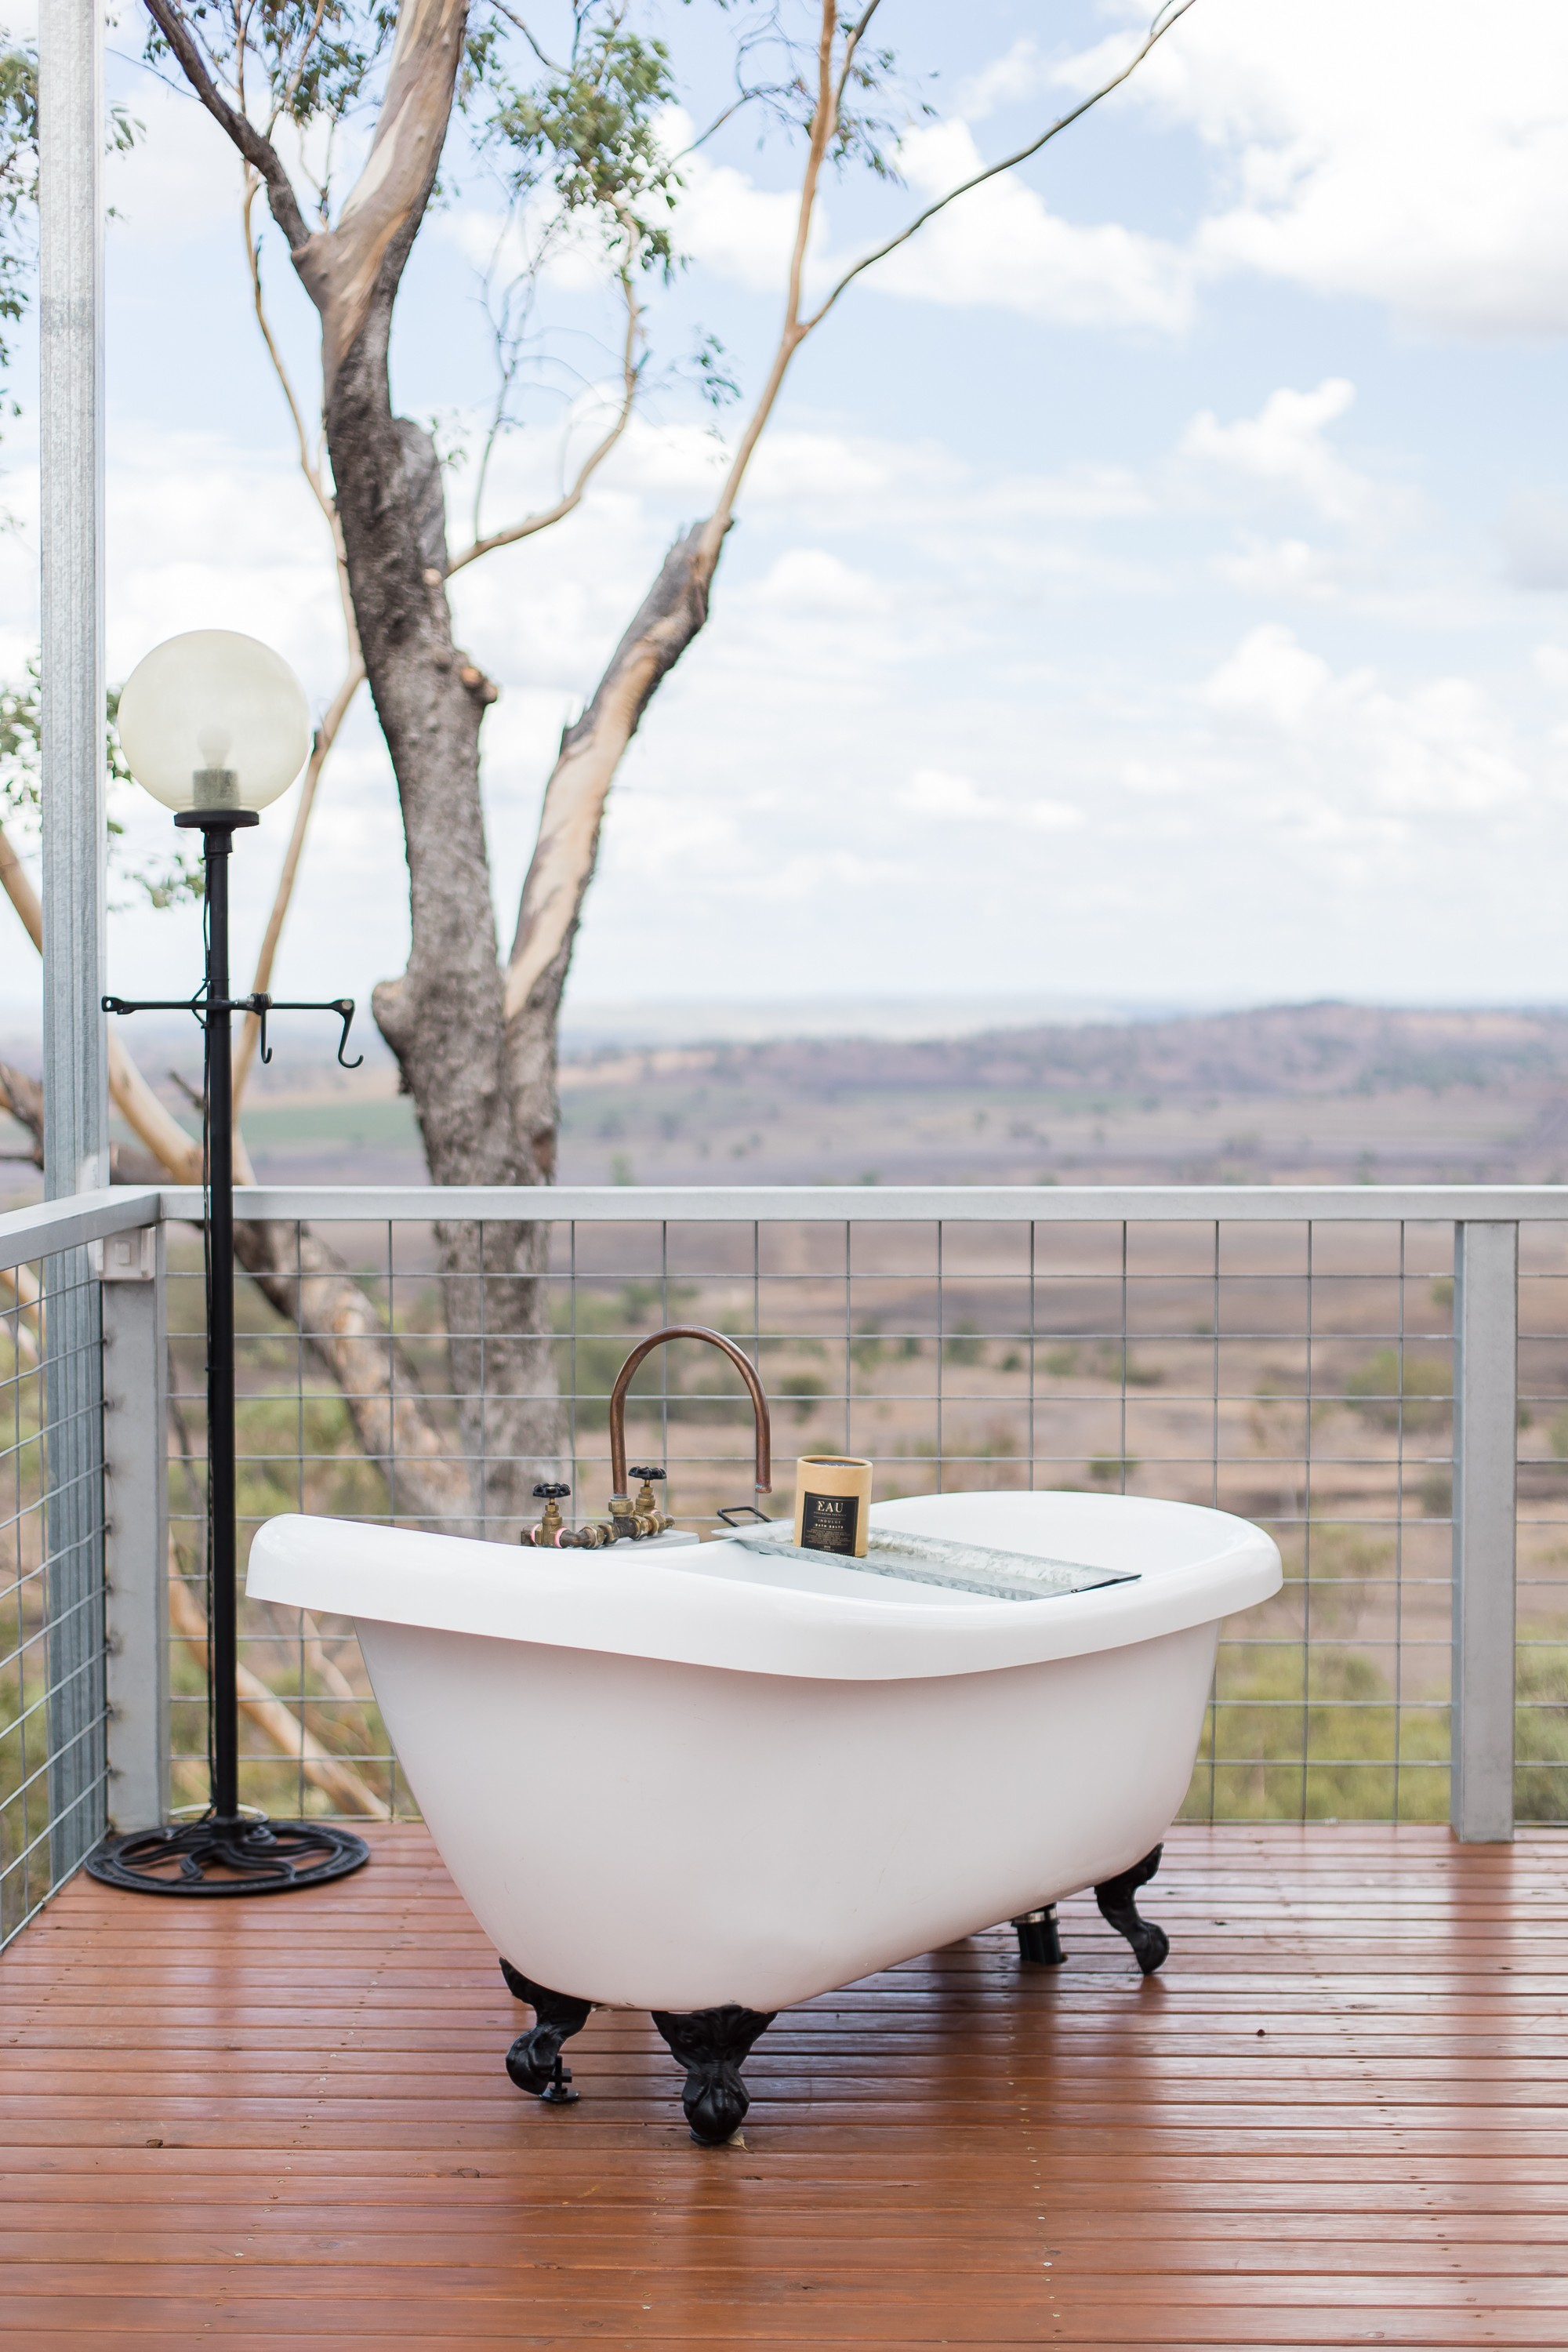 Faraway Domes | Bathtubs worth travelling for